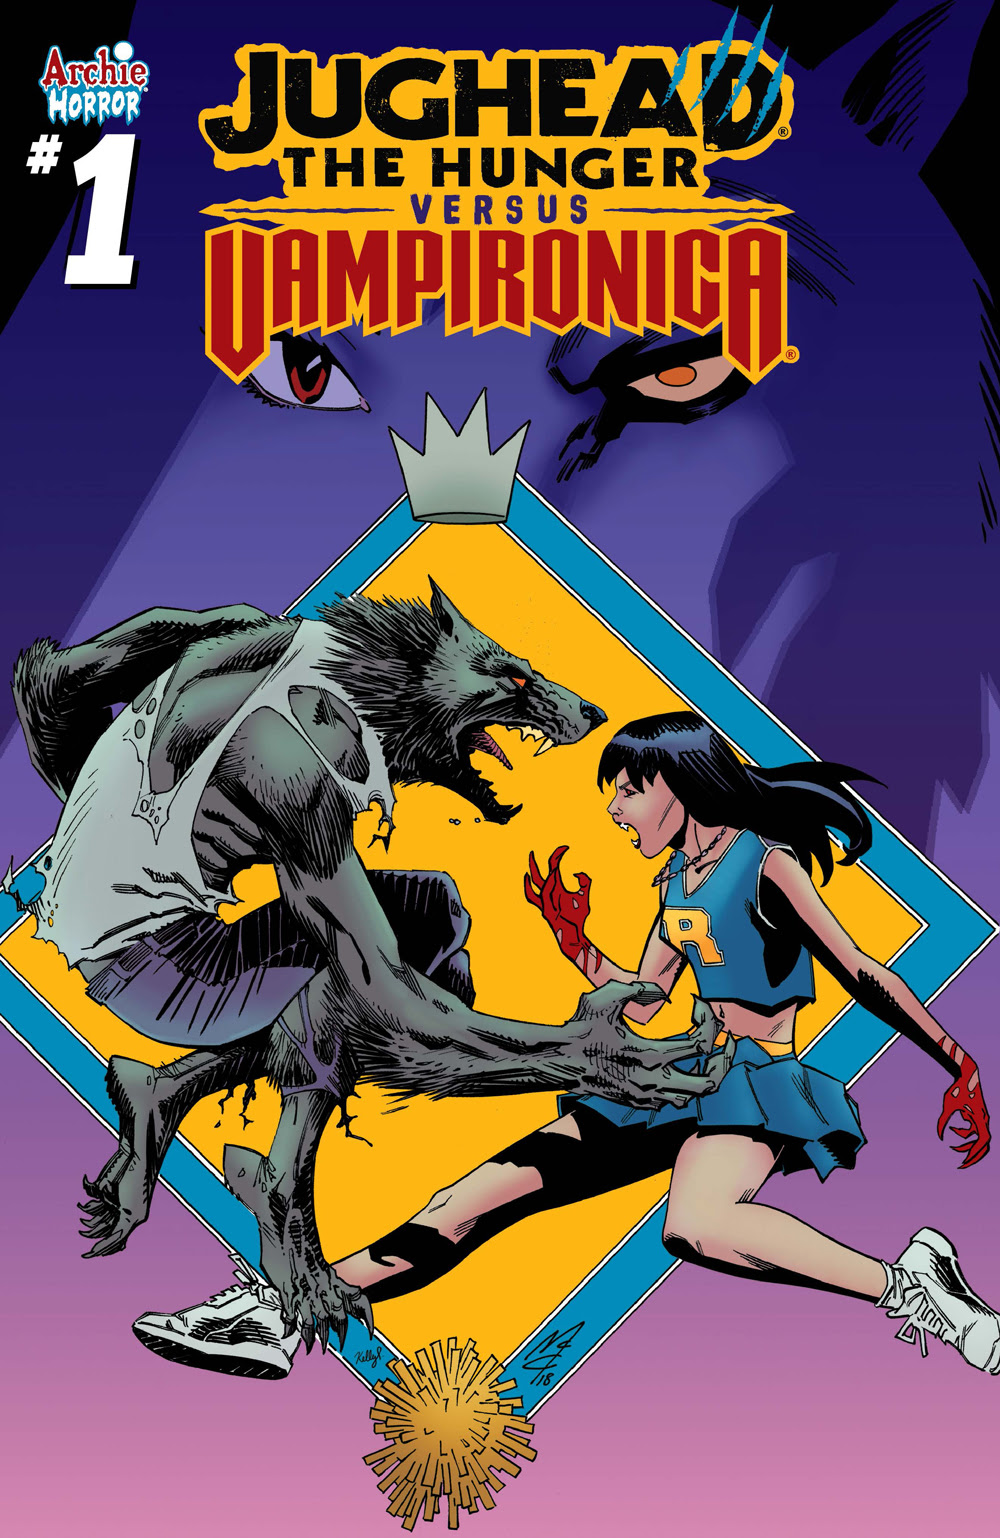 JUGHEAD: THE HUNGER VS. VAMPIRONICA #1: CVR B McCrea